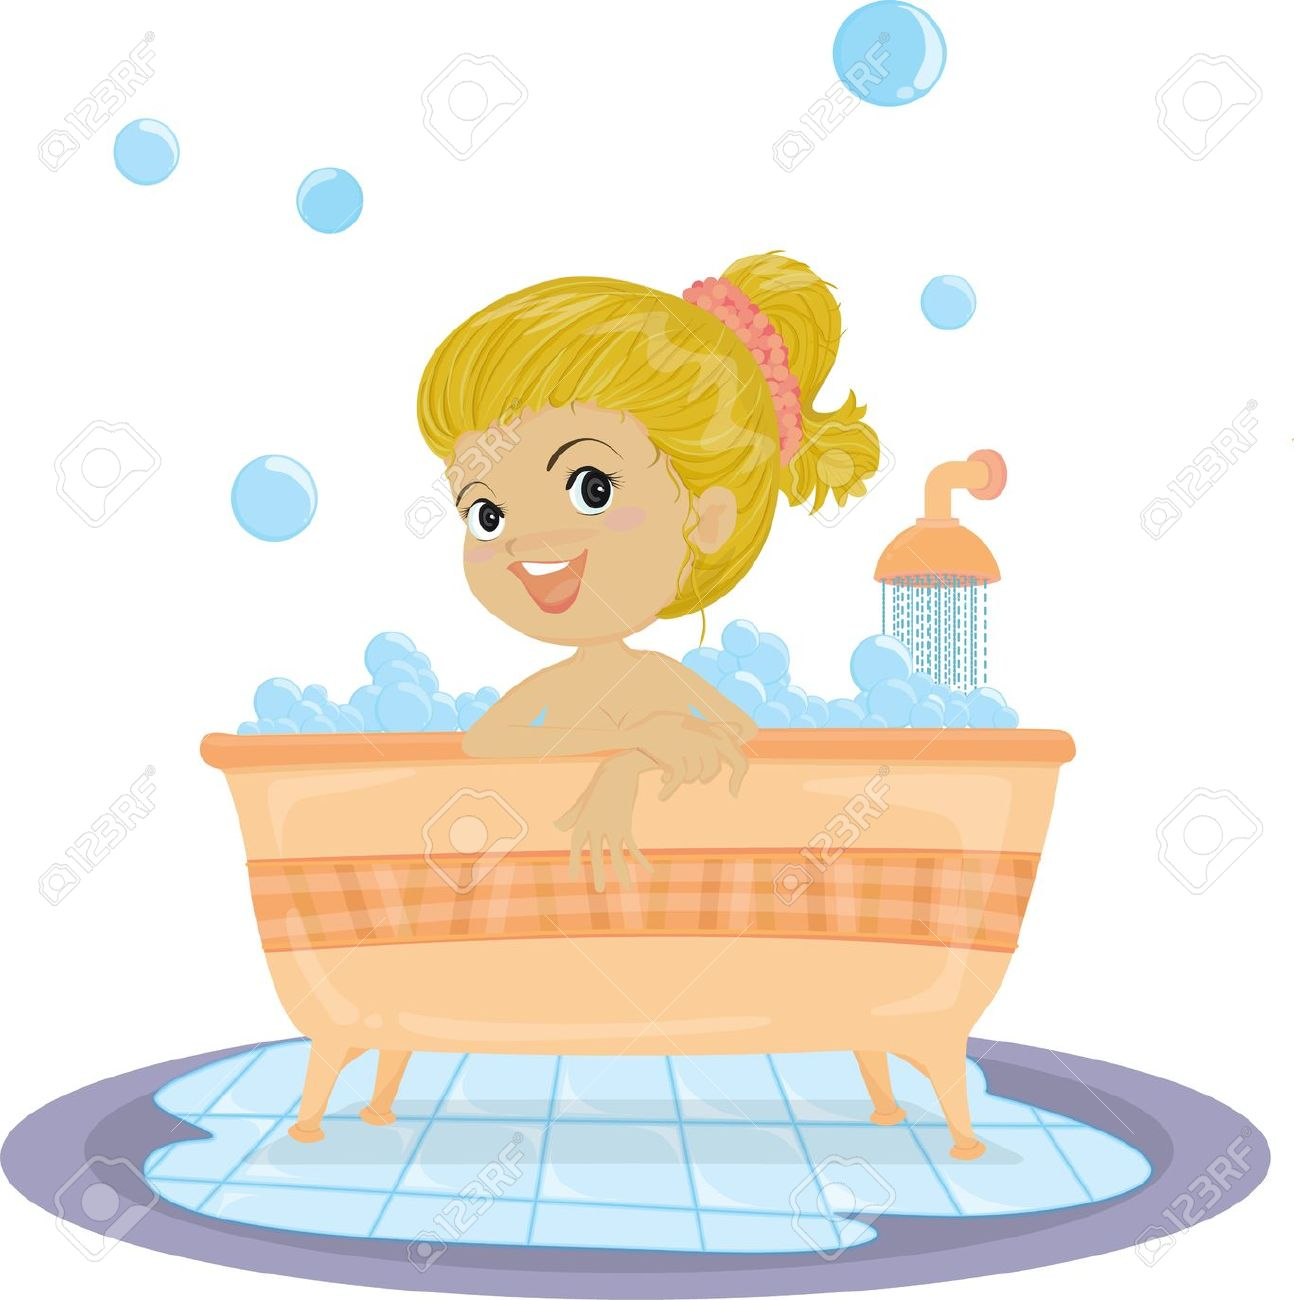 Girl take a bath clipart.